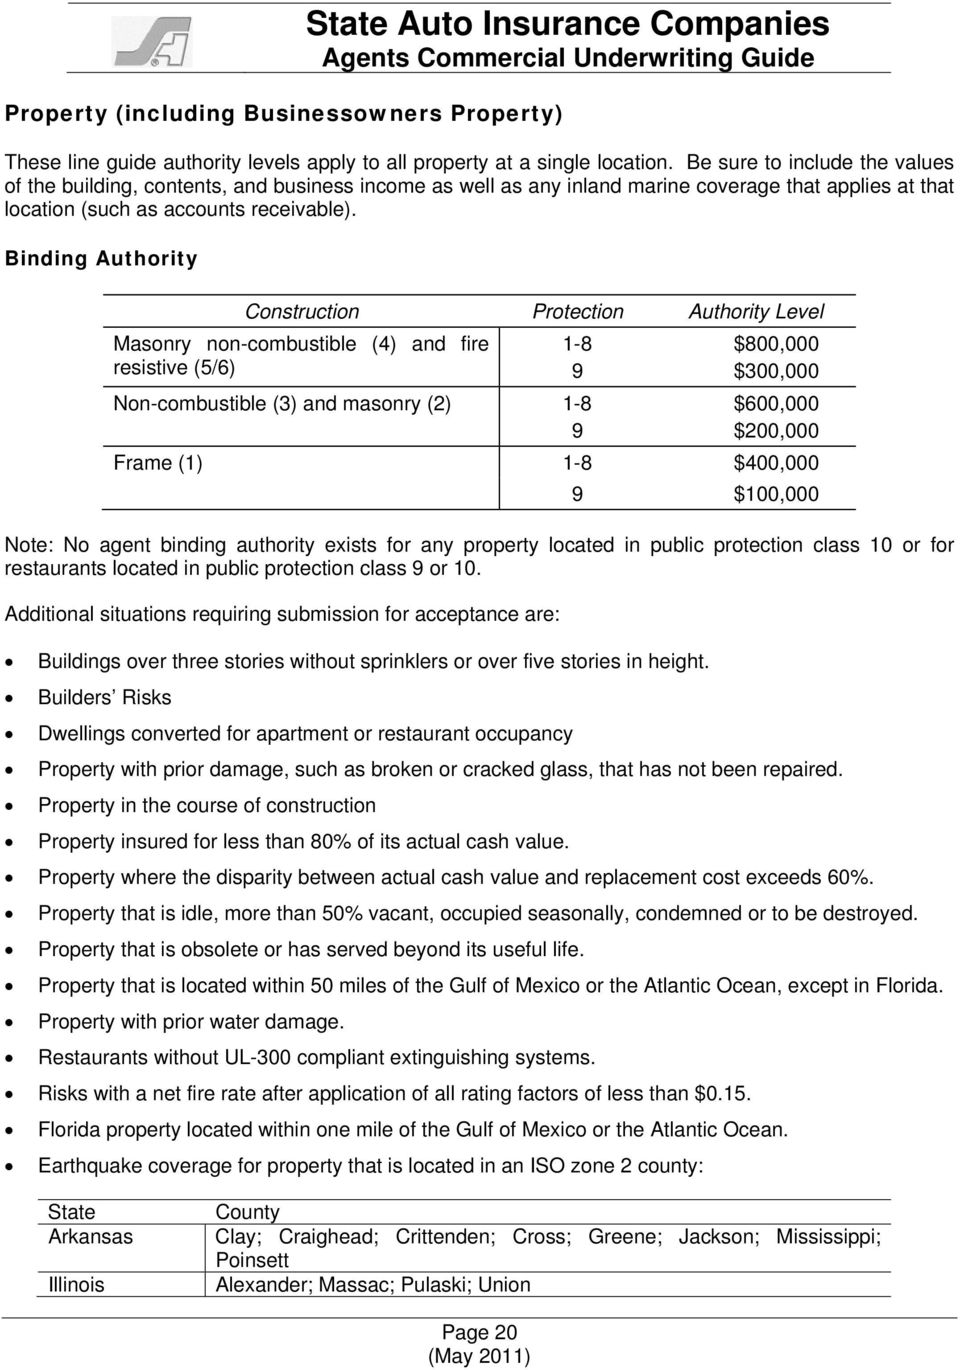 Binding Authority Construction Protection Authority Level Masonry non-combustible (4) and fire resistive (5/6) 1-8 9 Non-combustible (3) and masonry (2) 1-8 9 $800,000 $300,000 $600,000 $200,000